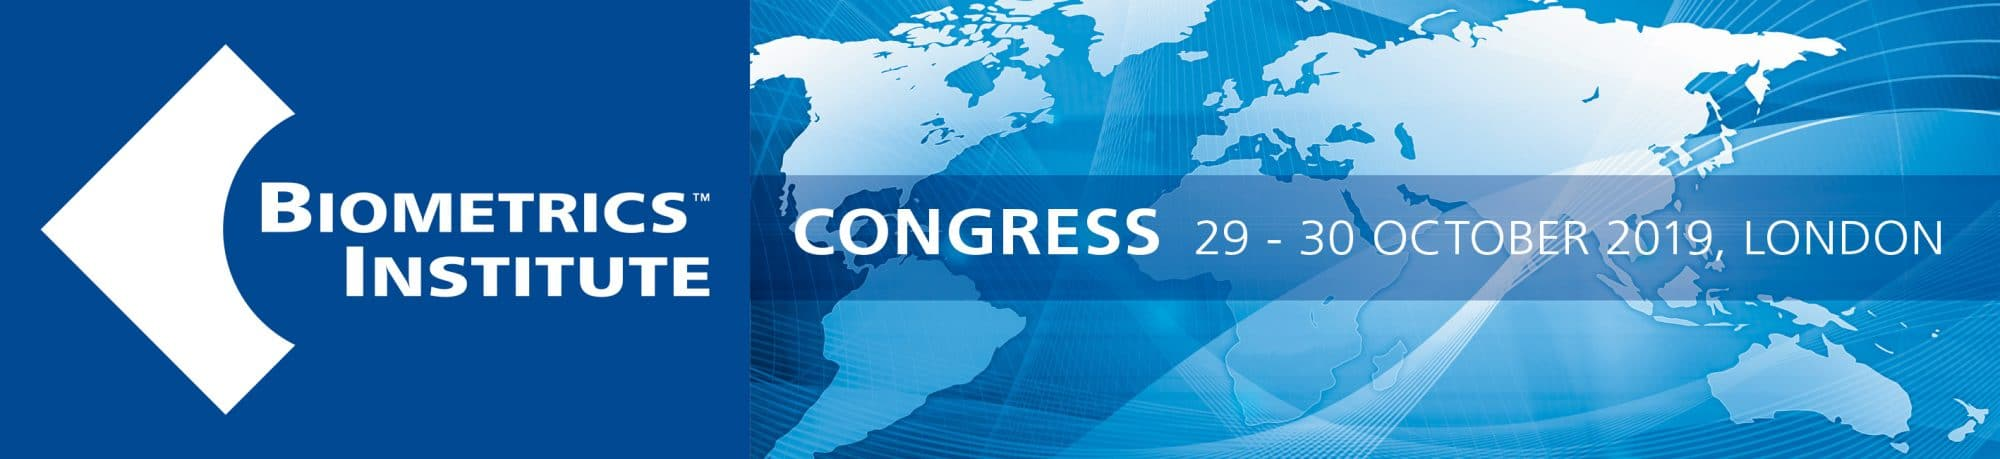 Biometrics Institute Congress 2019